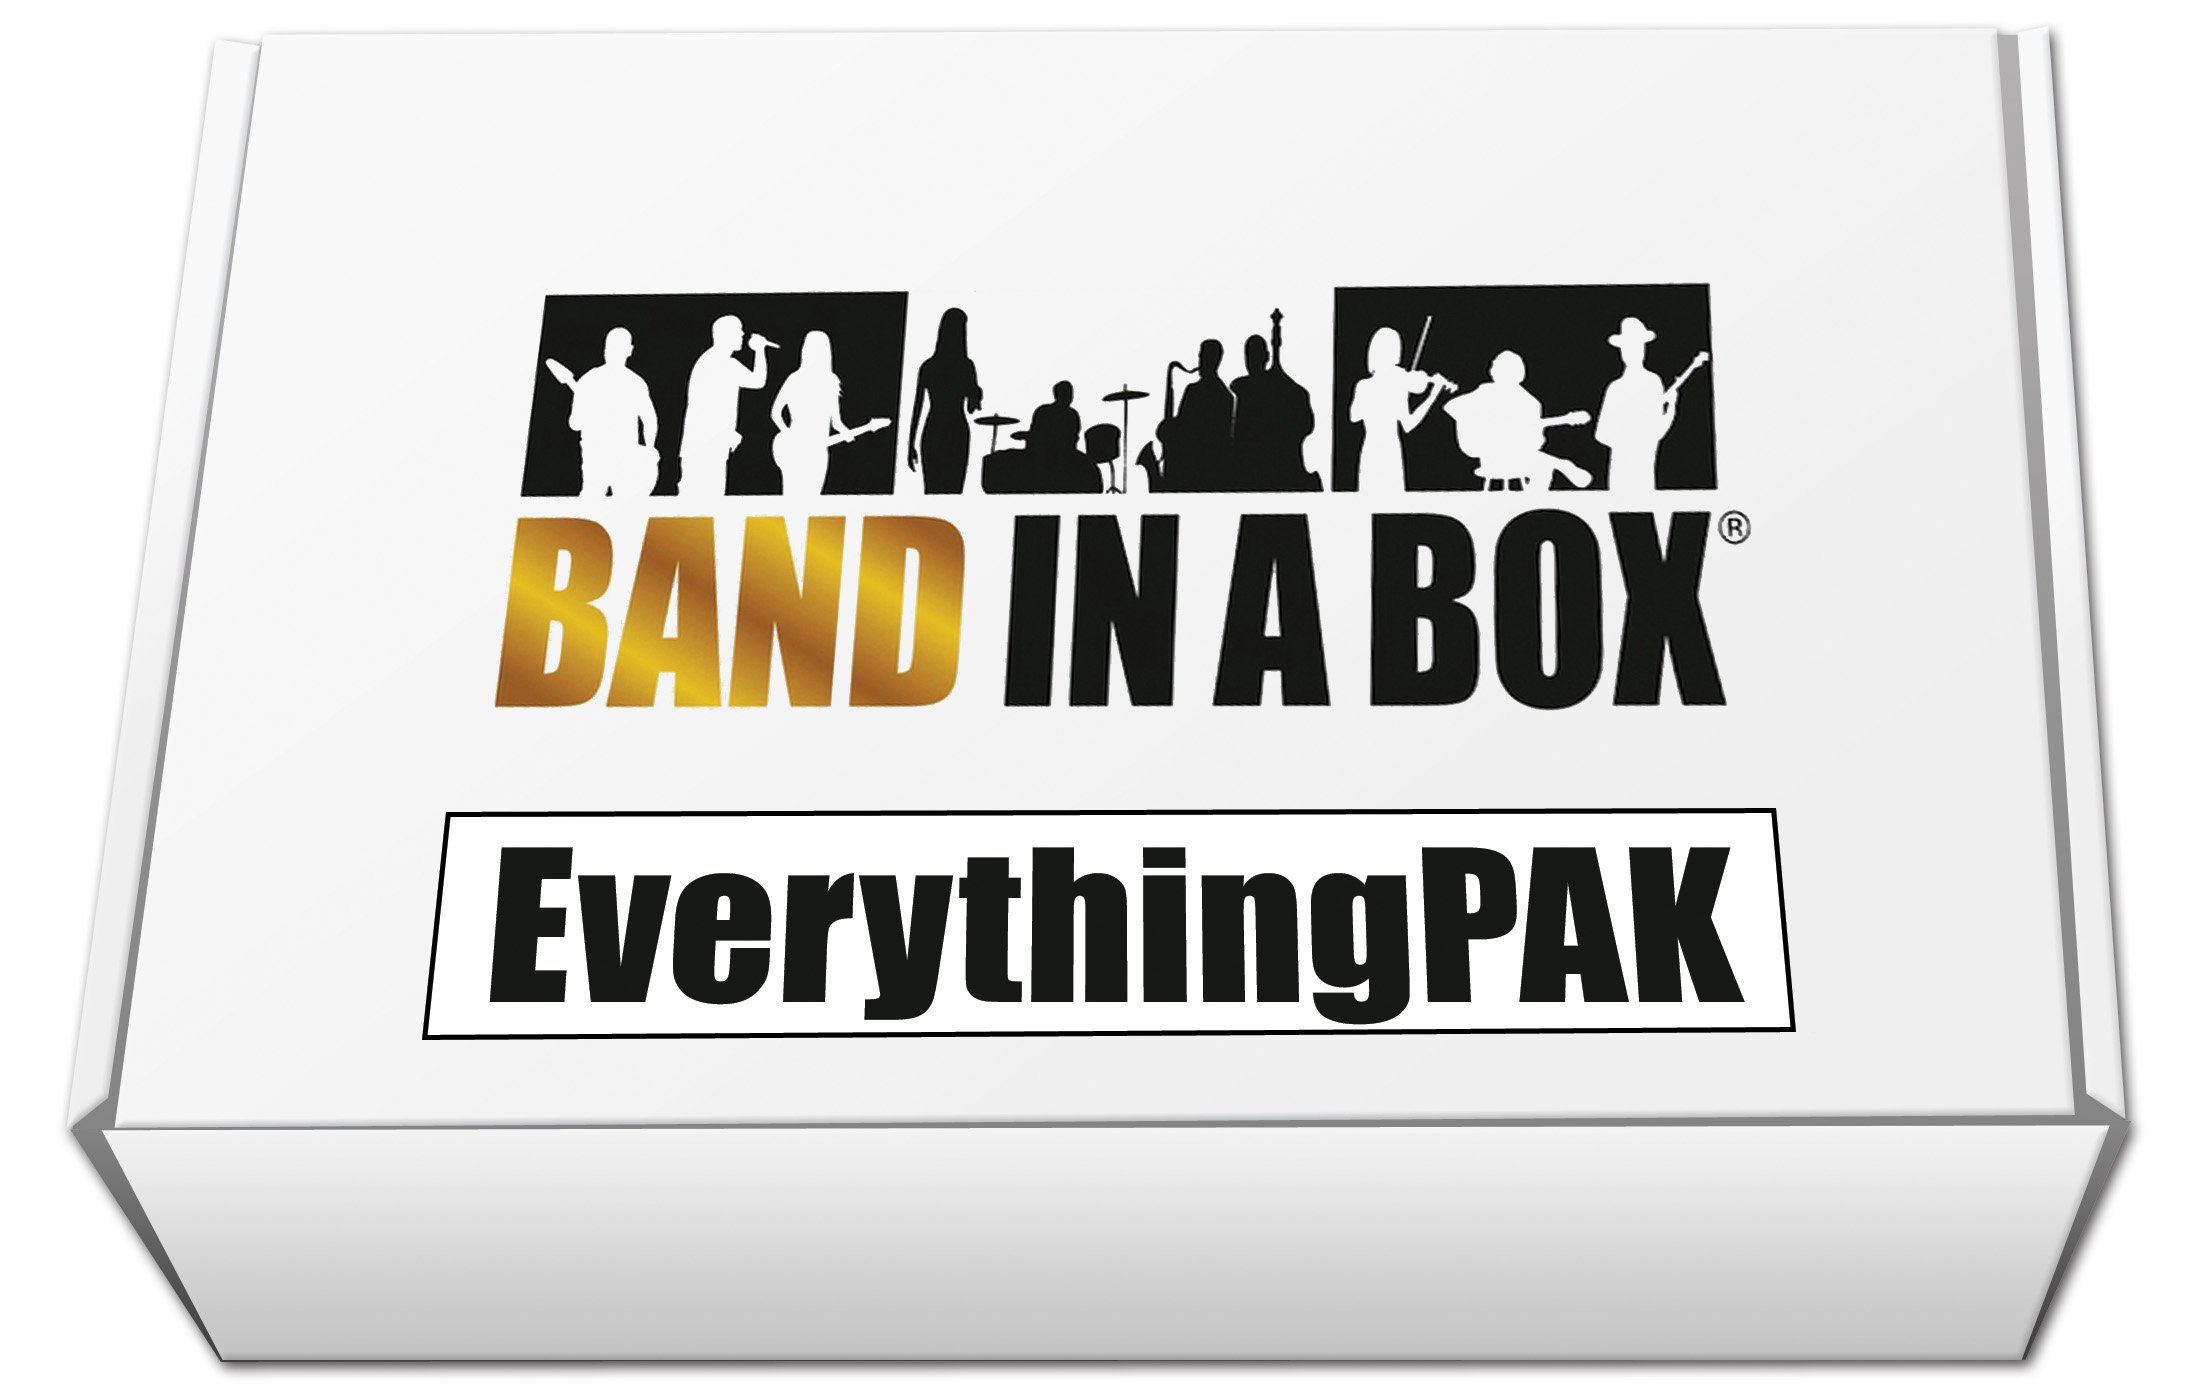 Band-in-a-Box 2017 EverythingPAK [Old Version, Mac USB Hard Drive] by PG Music Inc.